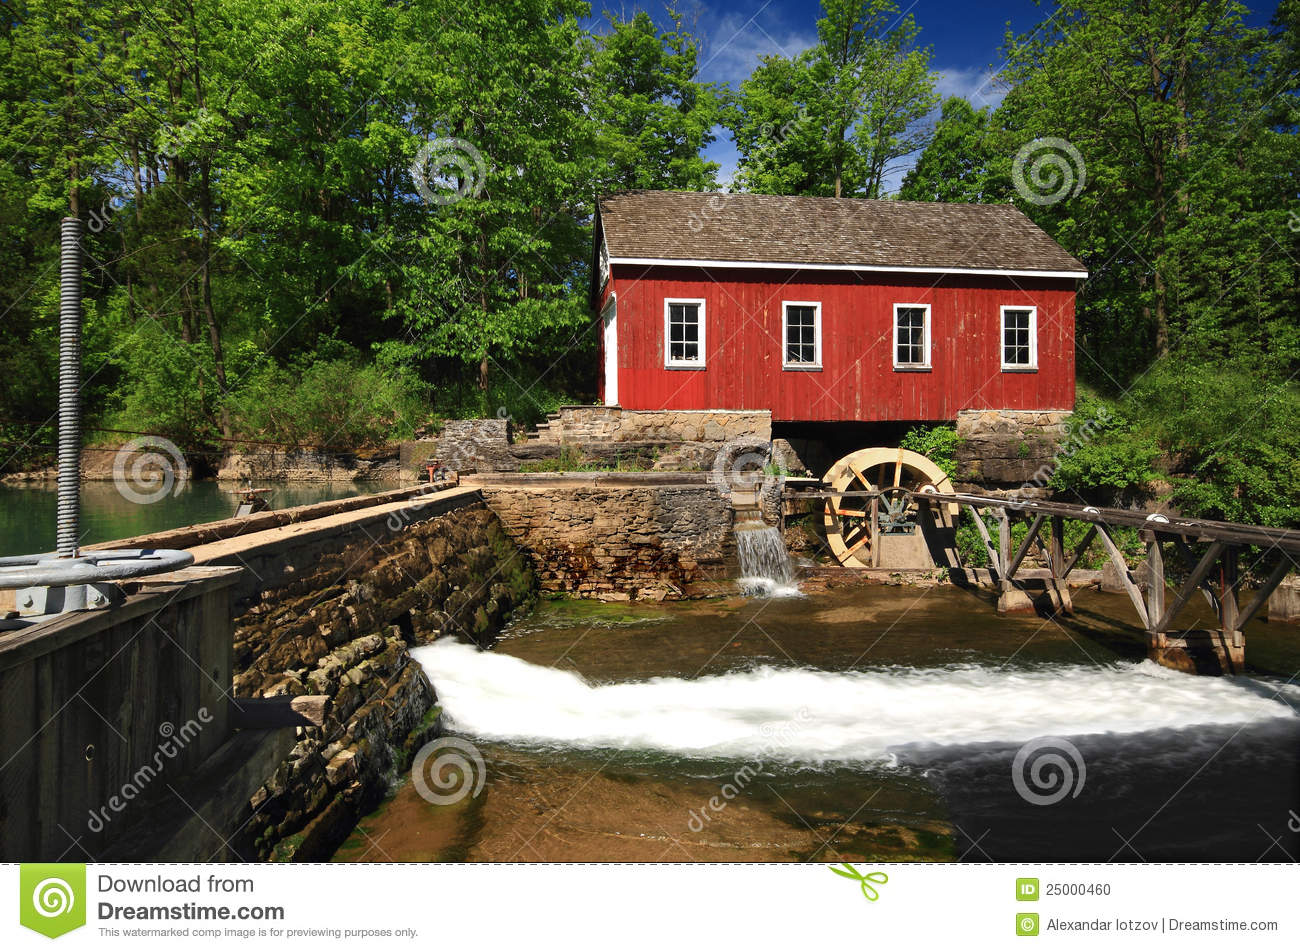 Historical Building Of Old Water Sawmill  Stock Photo - Image of